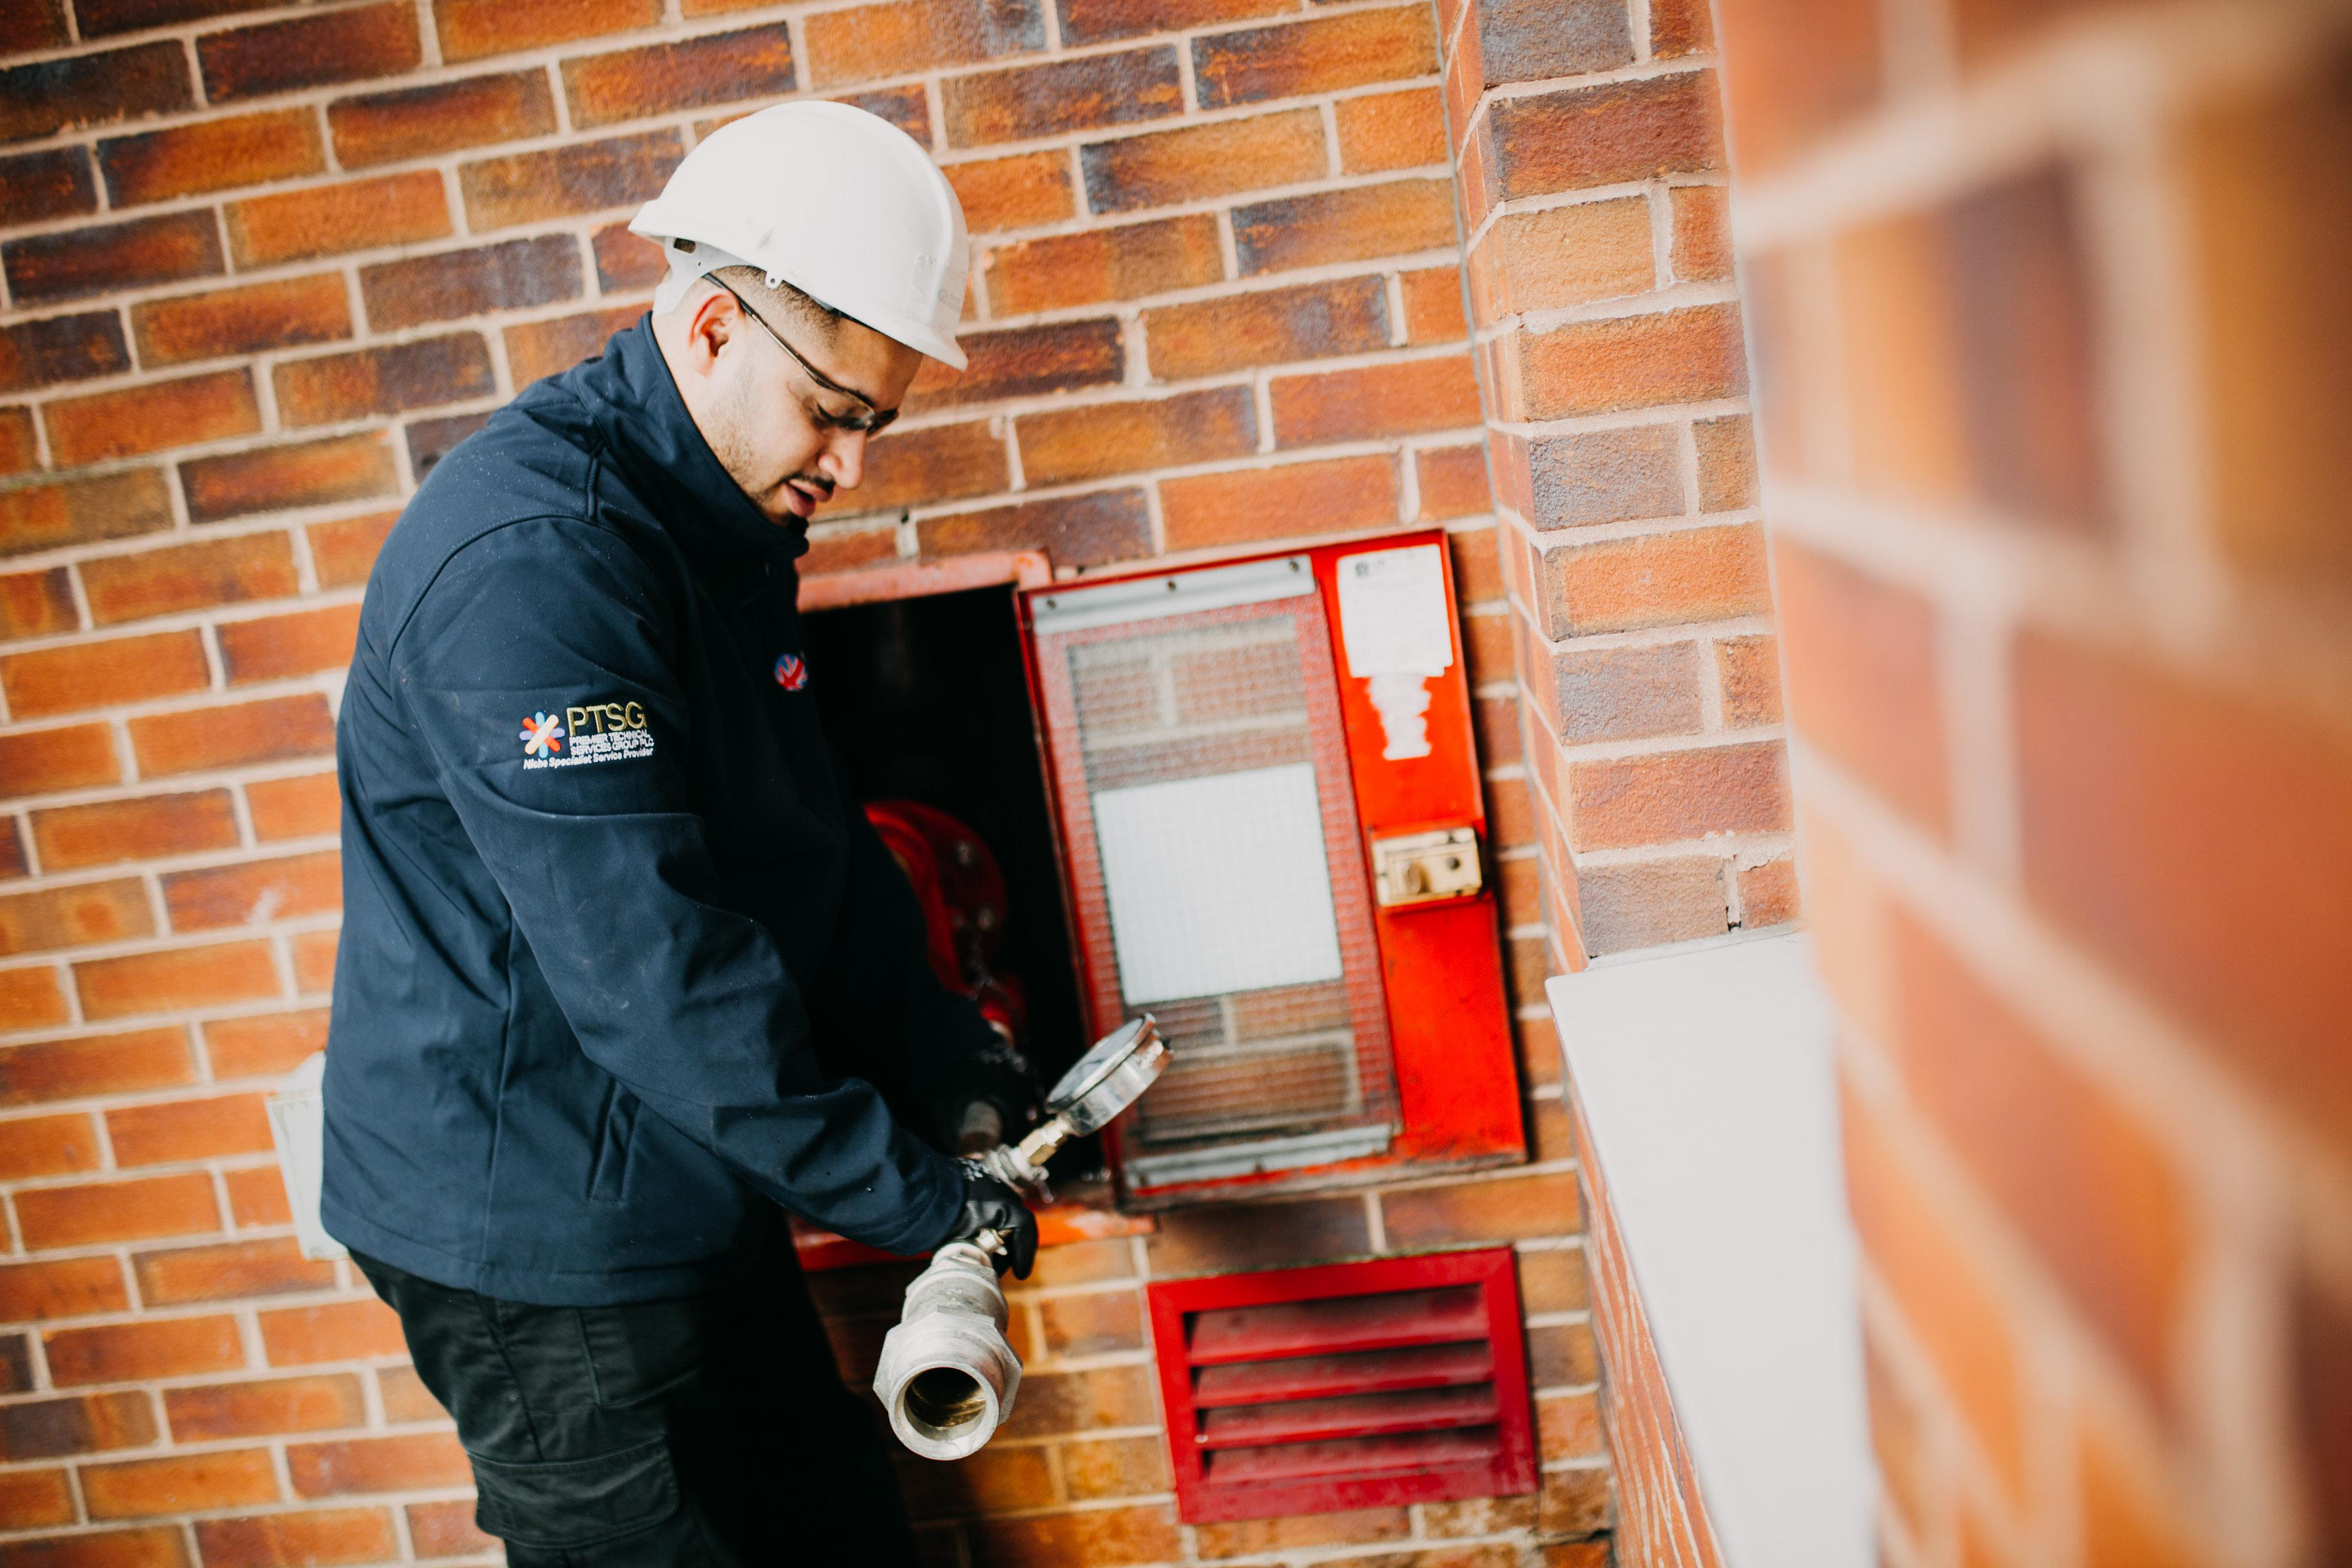 PTSG receives glowing praise for its fire solutions